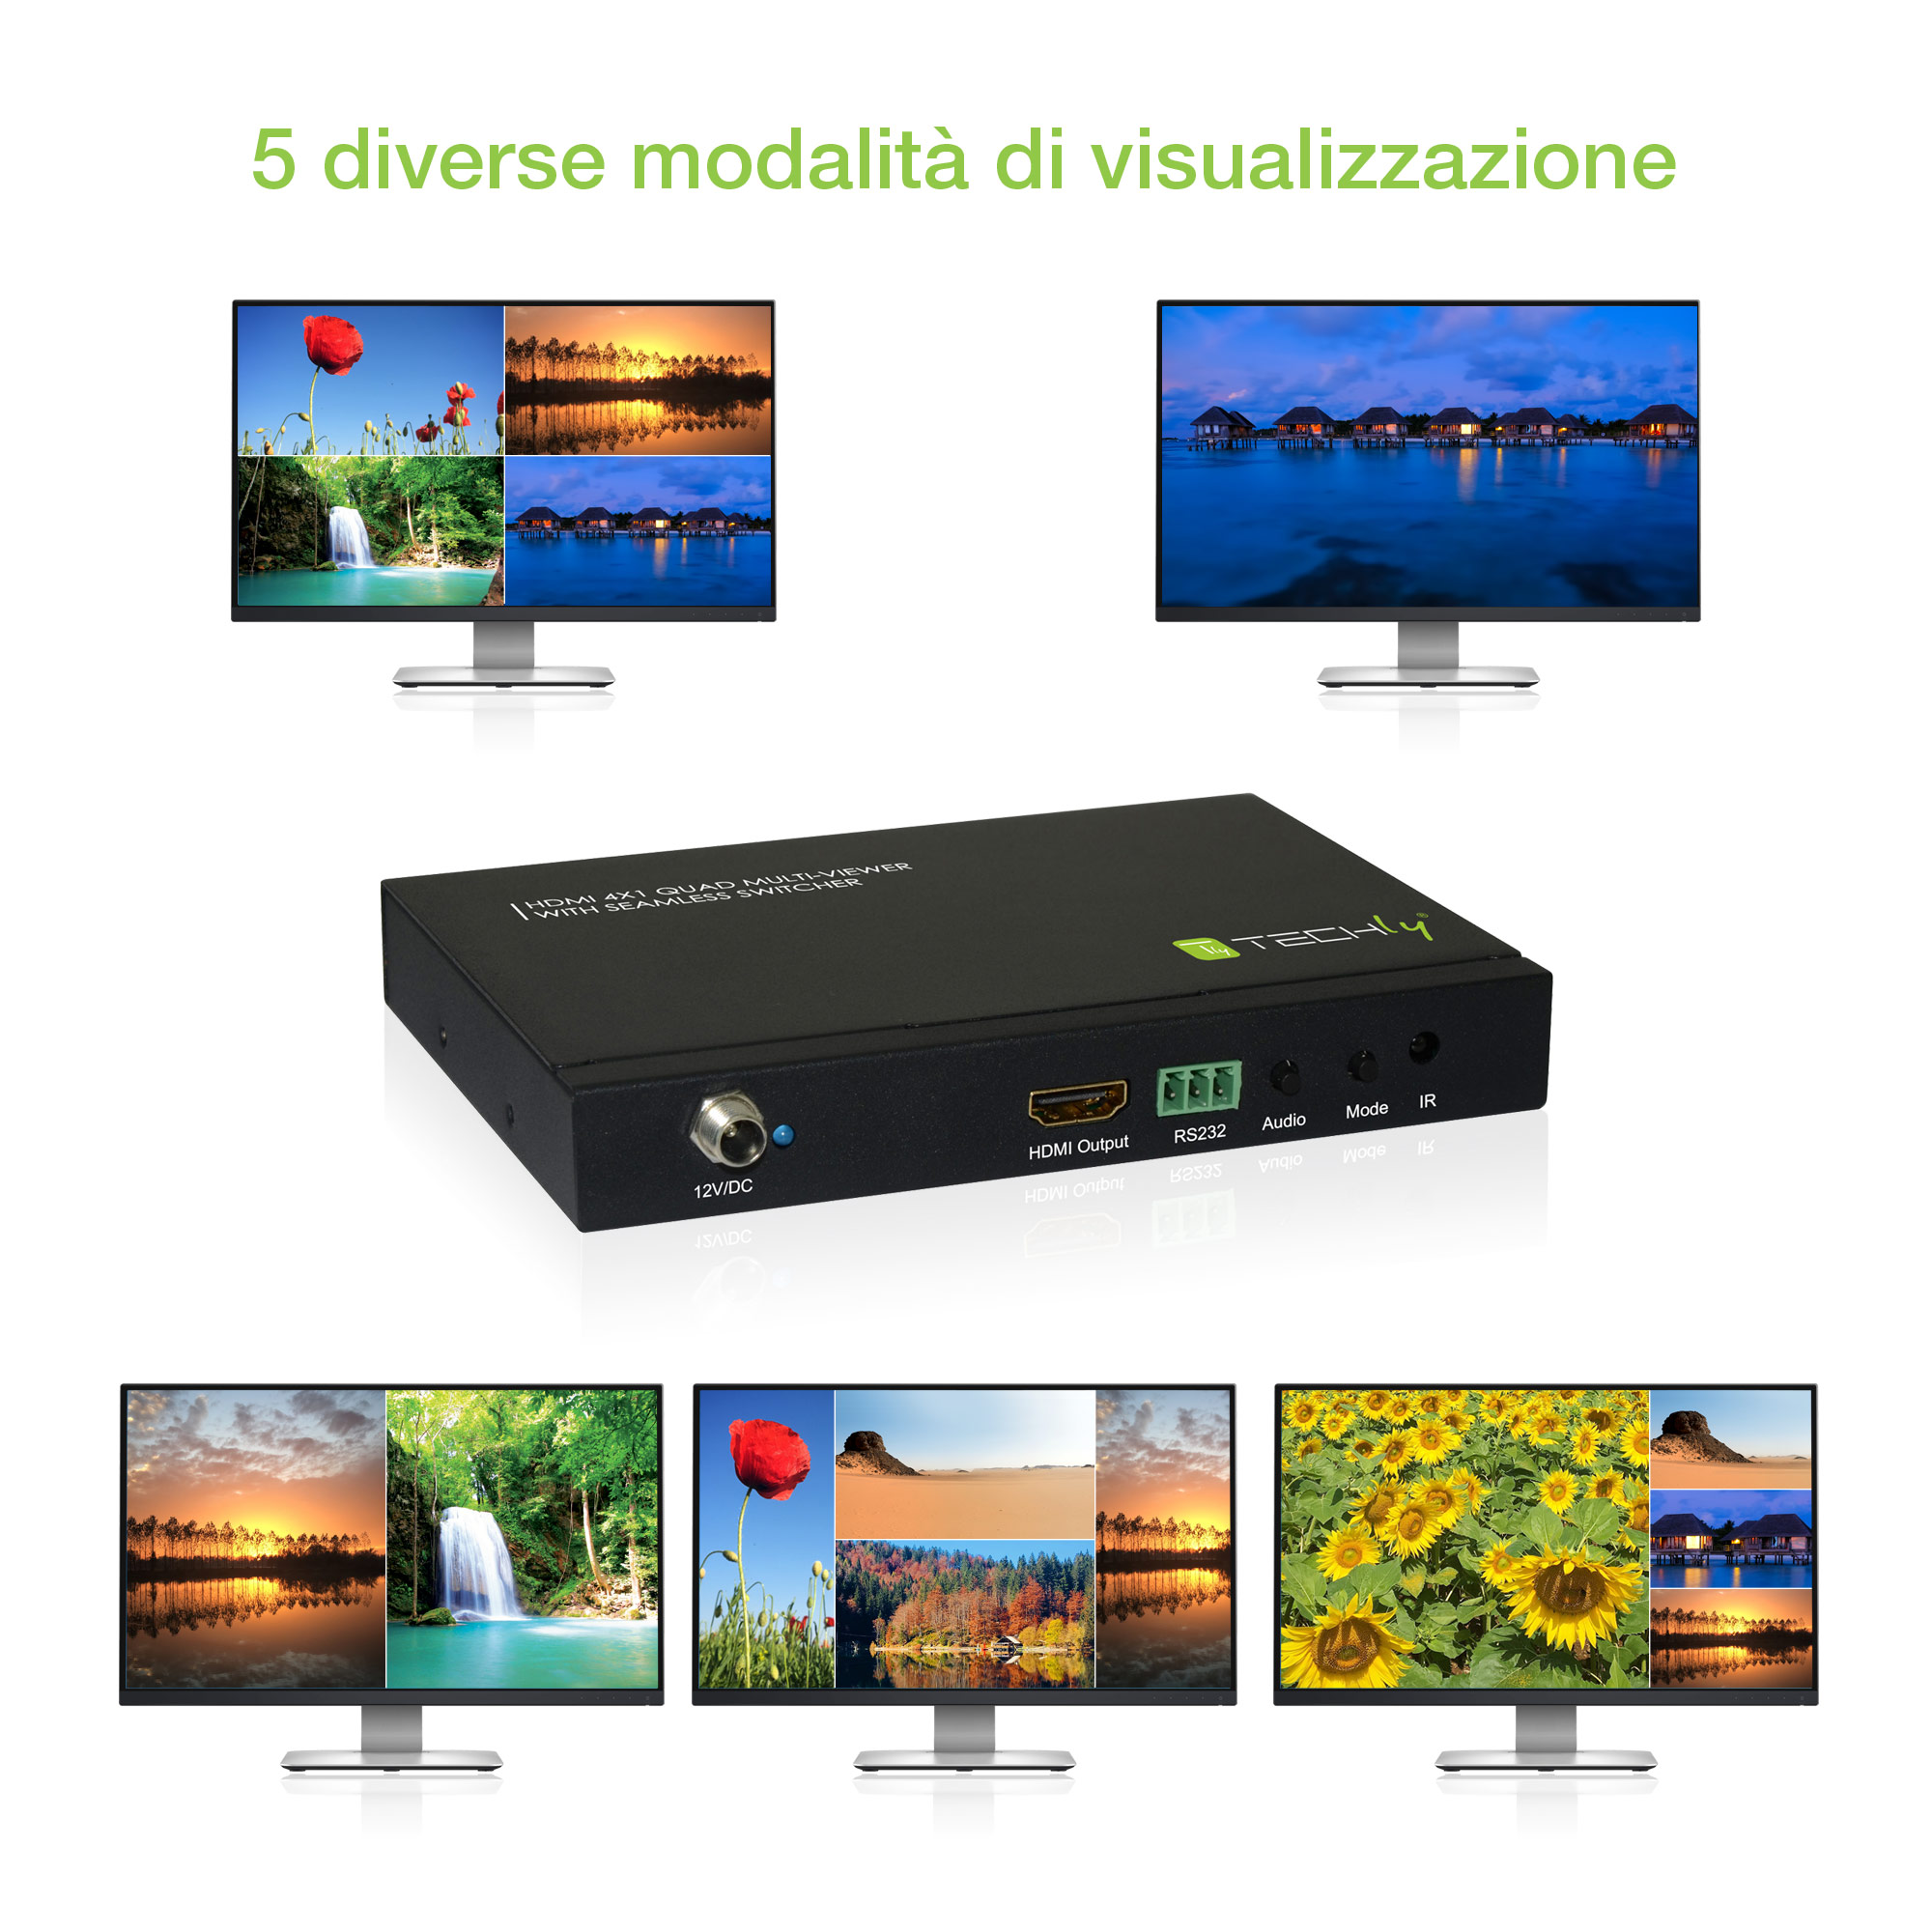 HDMI 4x1 Multi-viewer with seamless switcher - Audio Video Switch